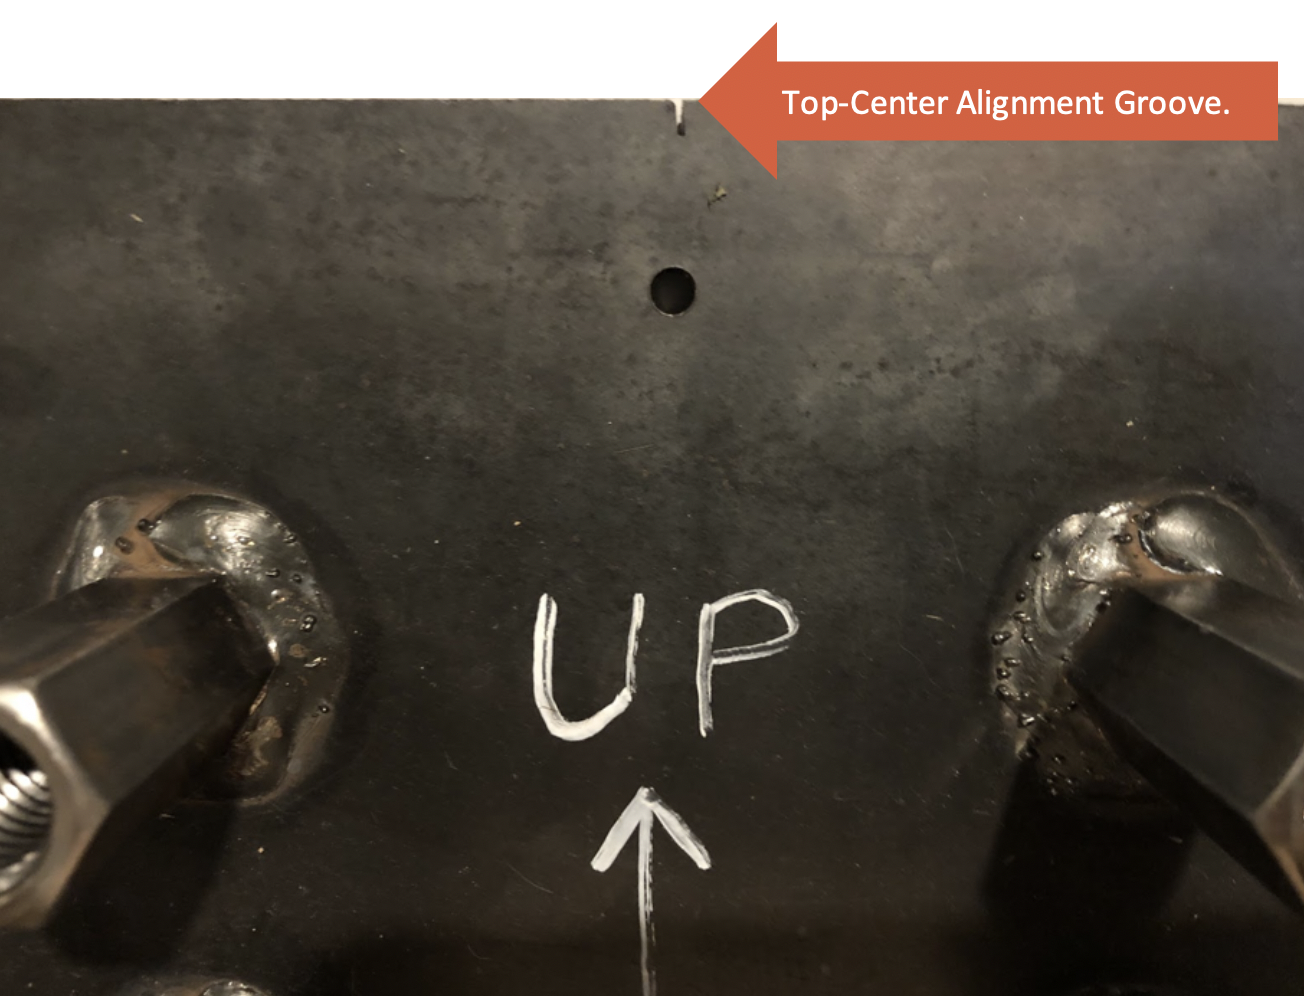 Steel Embed Top-Center Alignment Groove